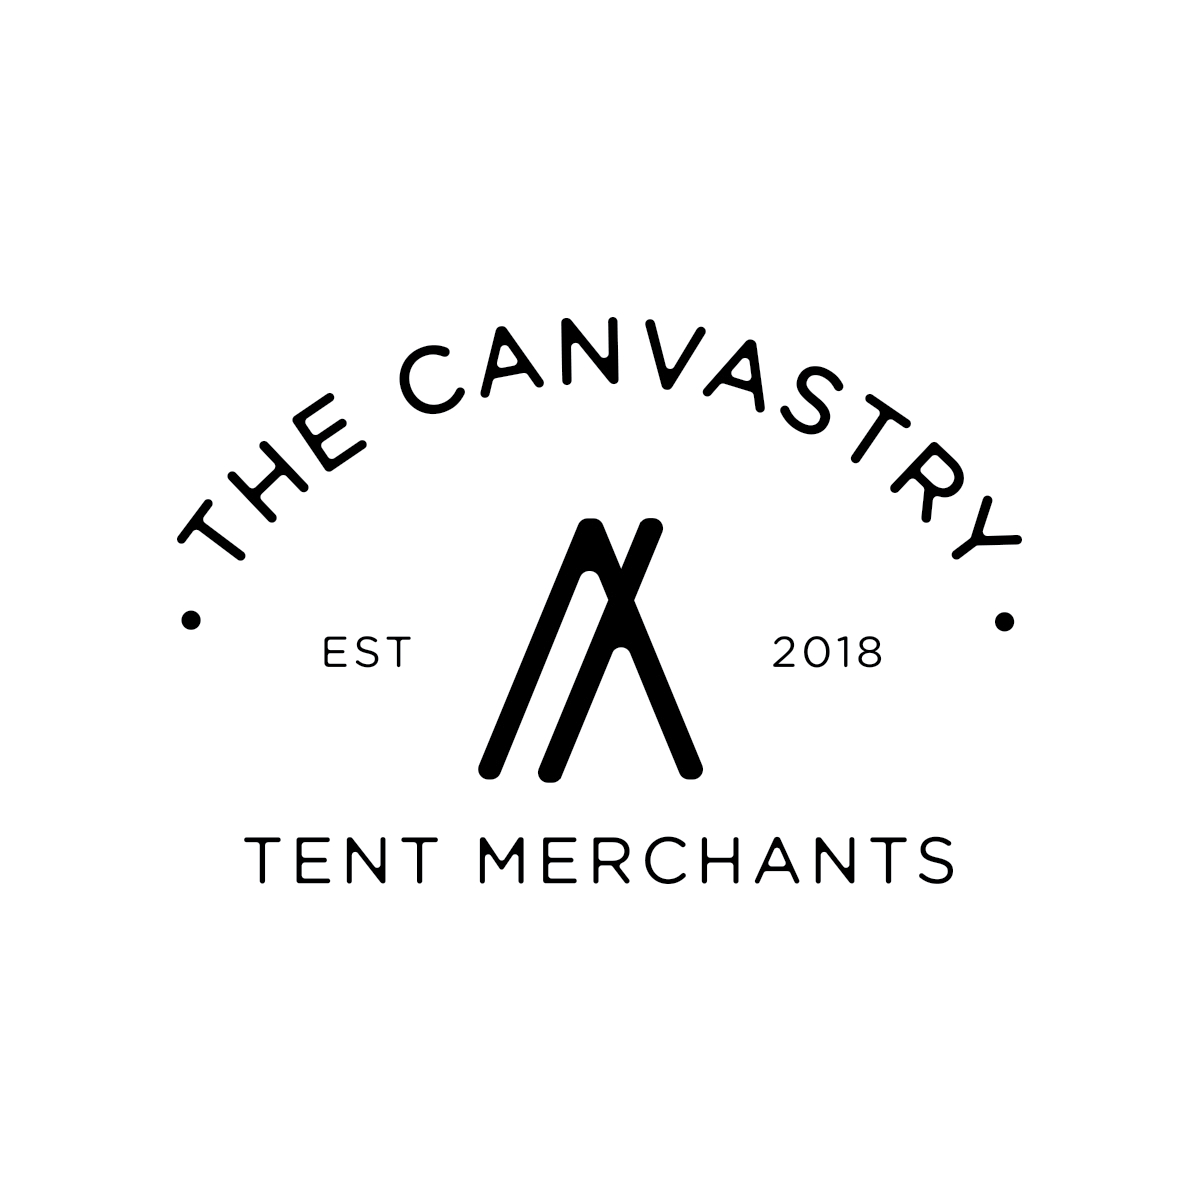 TheCanvastry_logo-bw.png